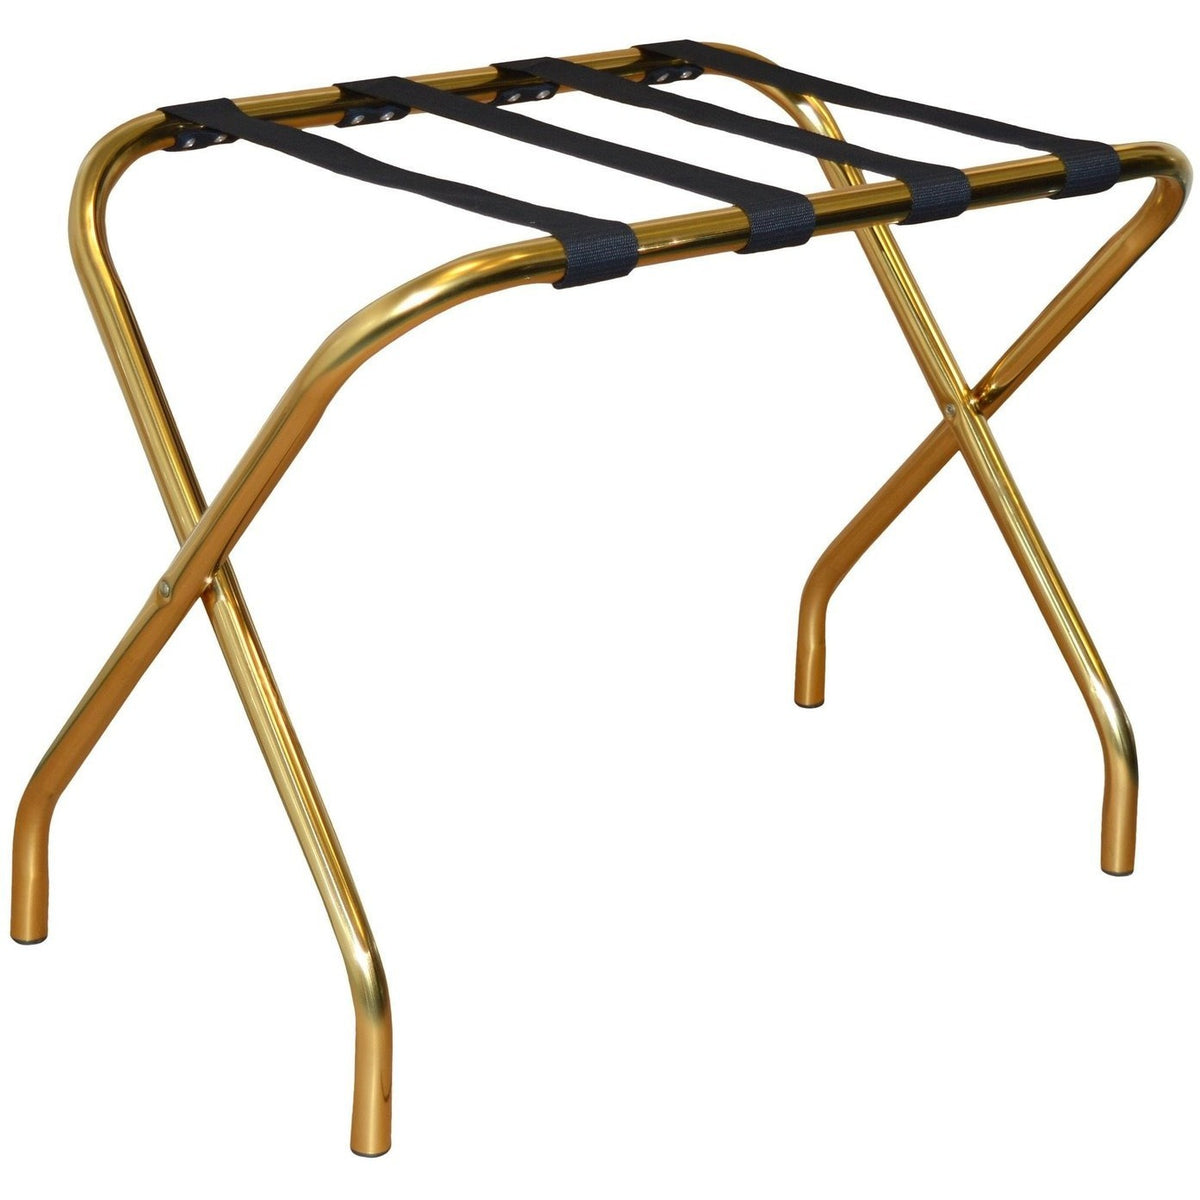 Harbour Housewares Folding Metal Luggage Rack - Gold